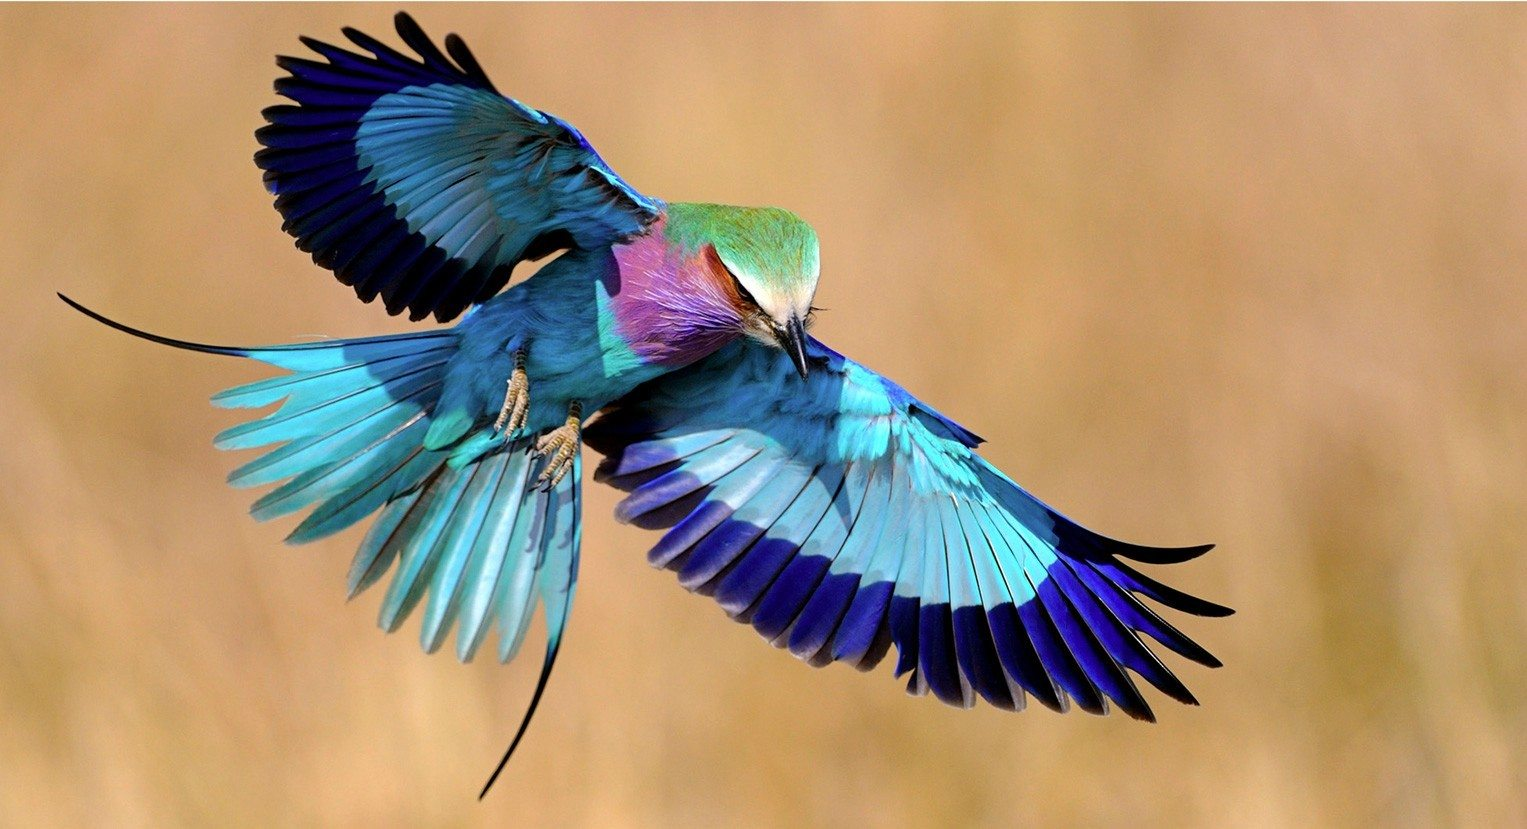 lilac-breasted-roller-spread-wings.answersafrica